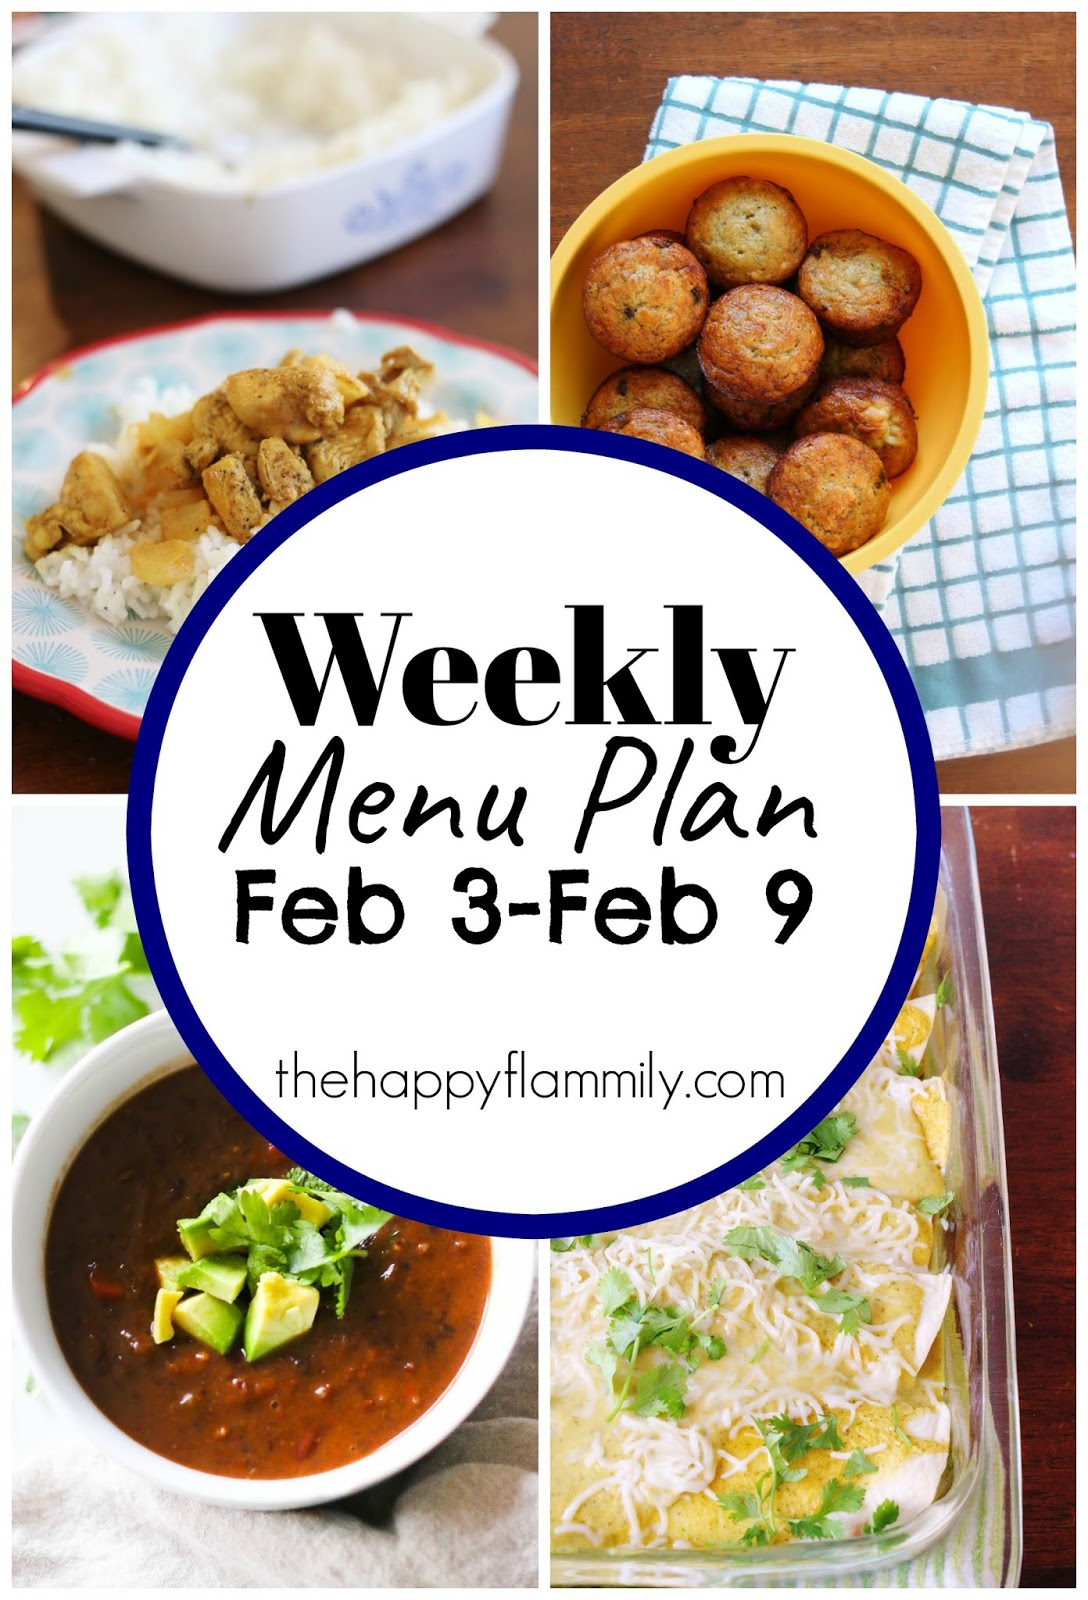 If you're in the need for a simple family menu plan for a family on a budget, we have you covered. Come and enjoy breakfast, lunch, and dinner options with our free weekly family menu plan.